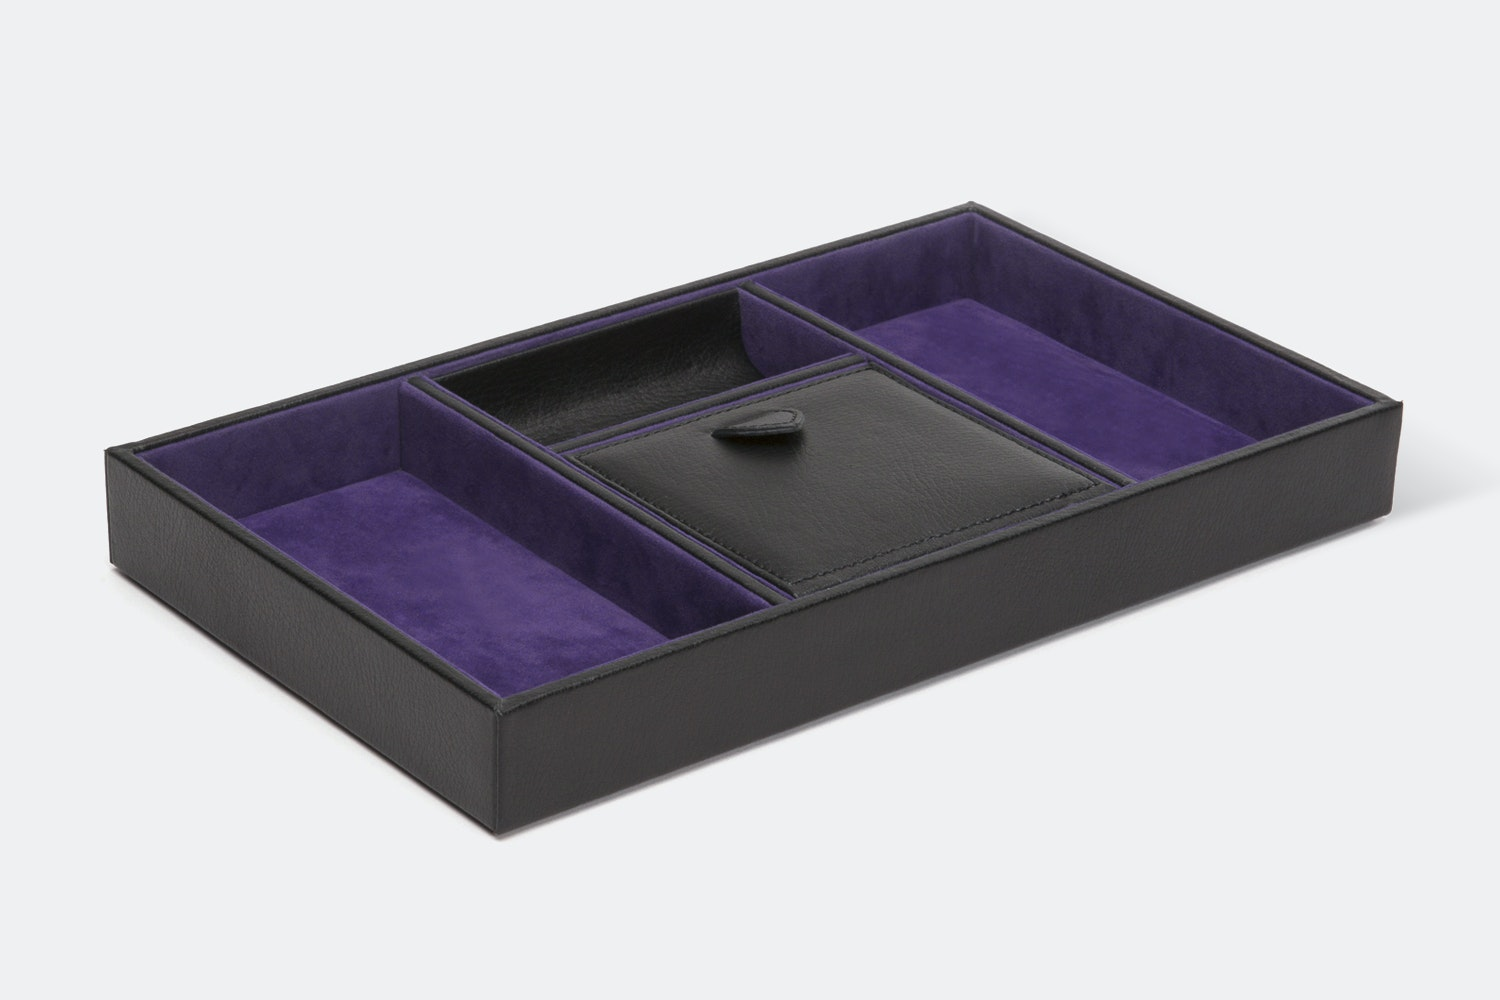 Blake Valet Tray (2018) - Black Pebble